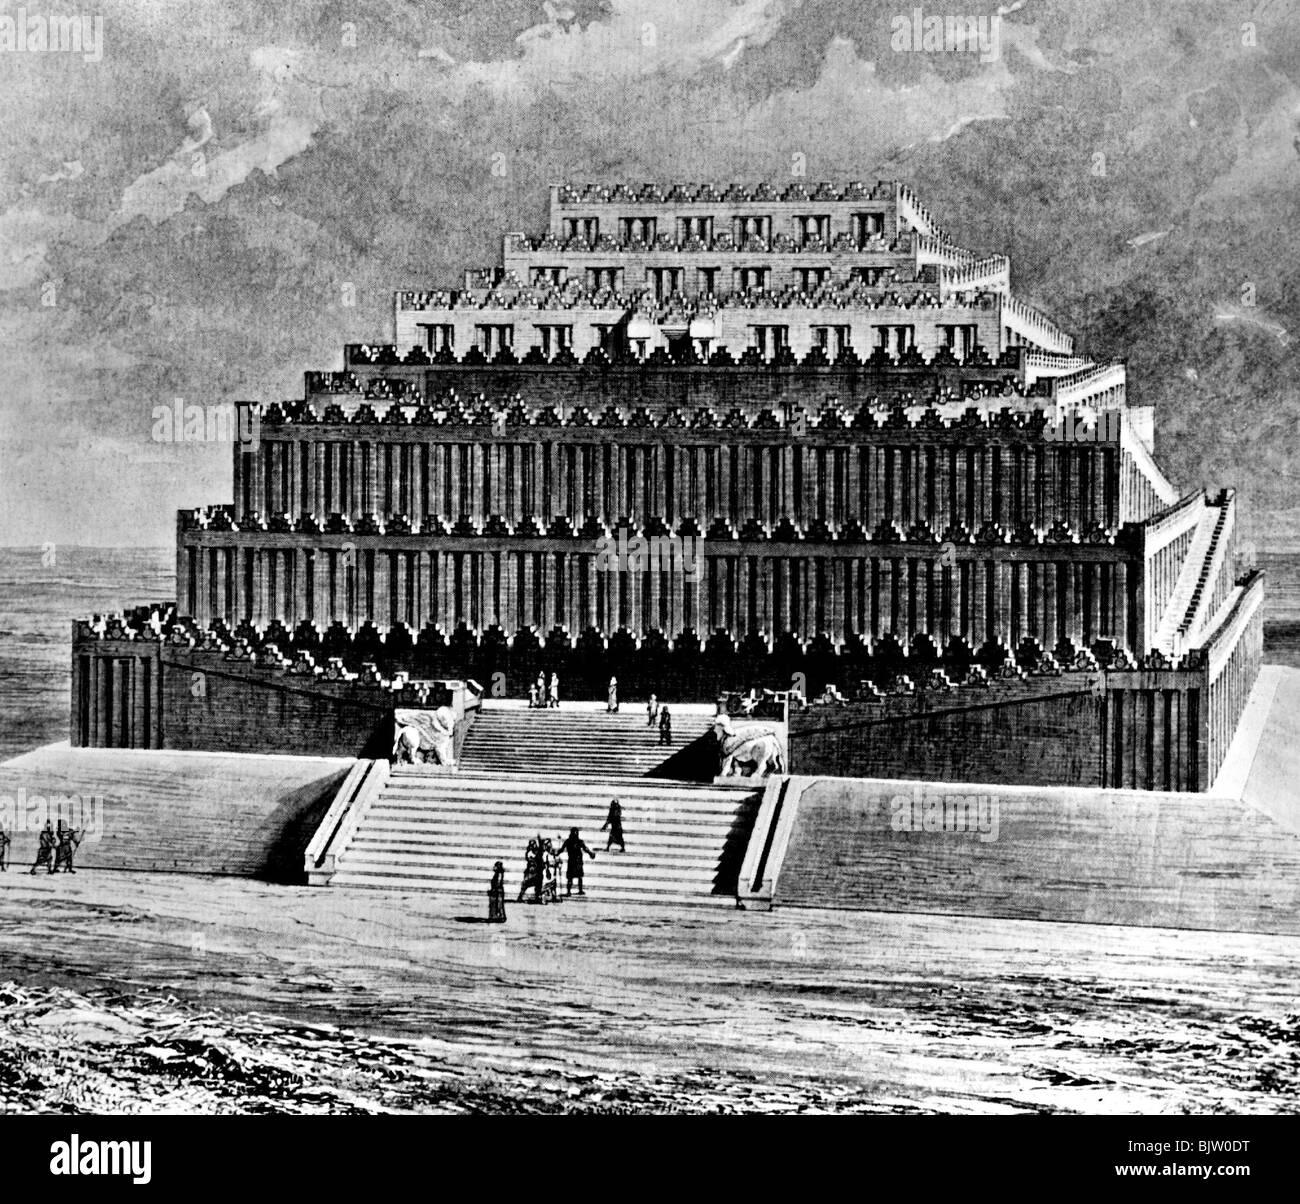 ancient world, Babylon, Tower of Babel, reconstruction by Sir Henry Rawlinson, 19th century, National Museum, Washington - Stock Image